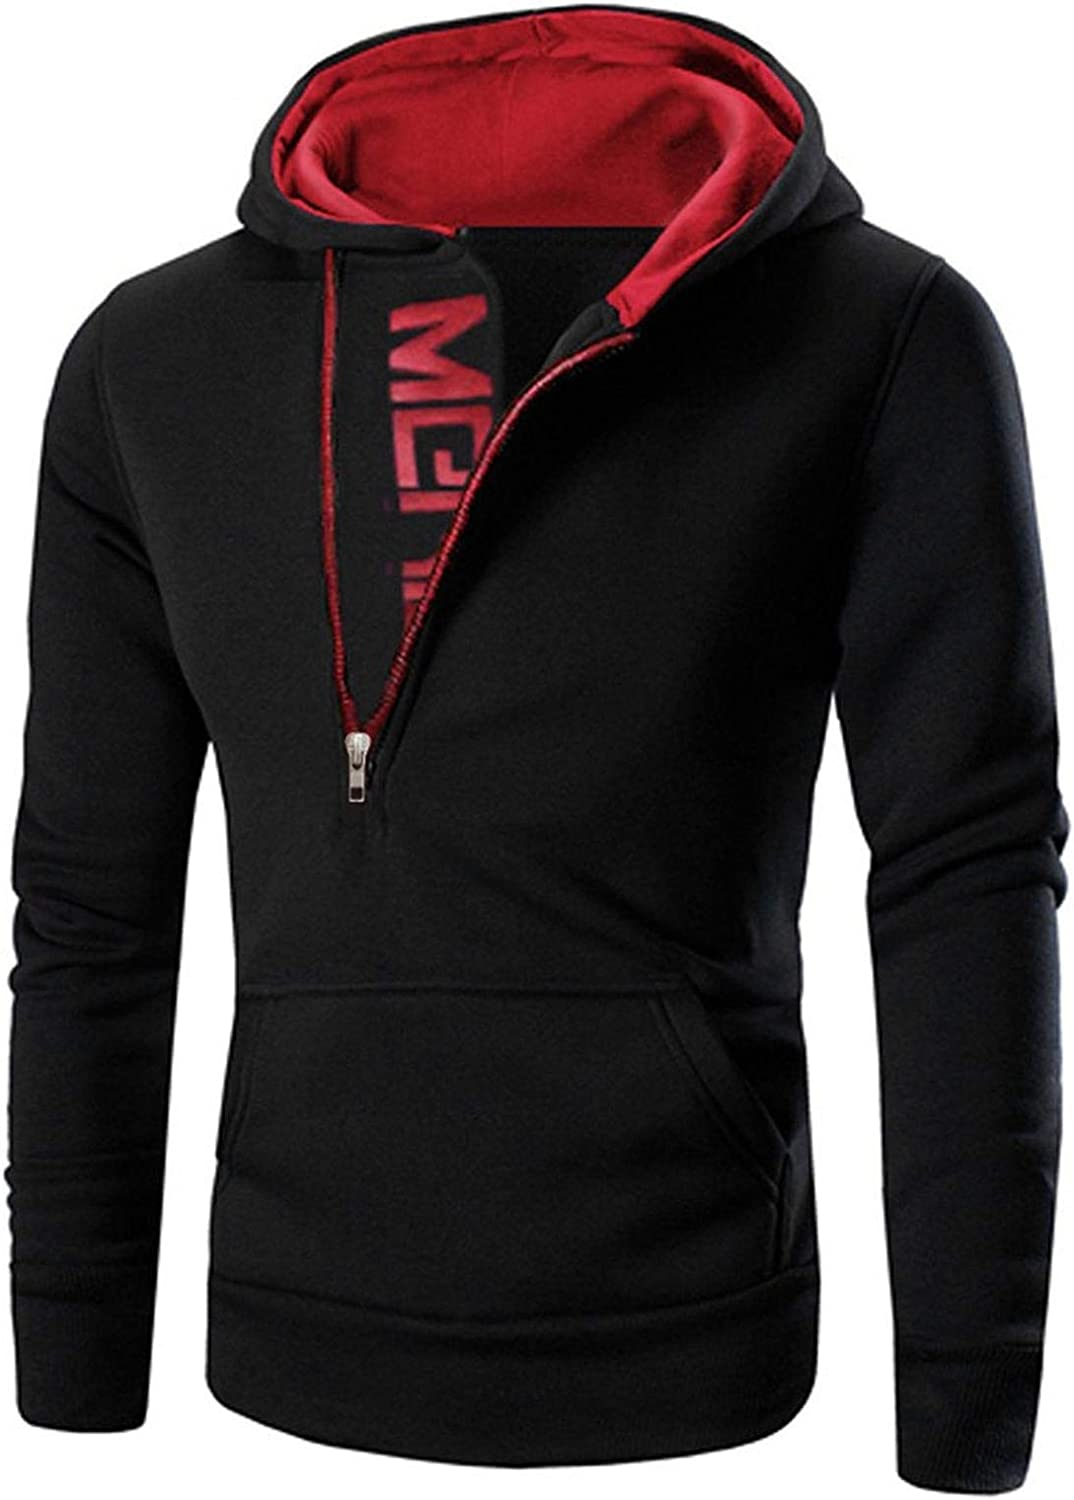 XXBR Hoodies for Mens, Diagonal Zipper Collar Letter Print Hooded Sweatshirts Patchwork Workout Slim Fit Pullover